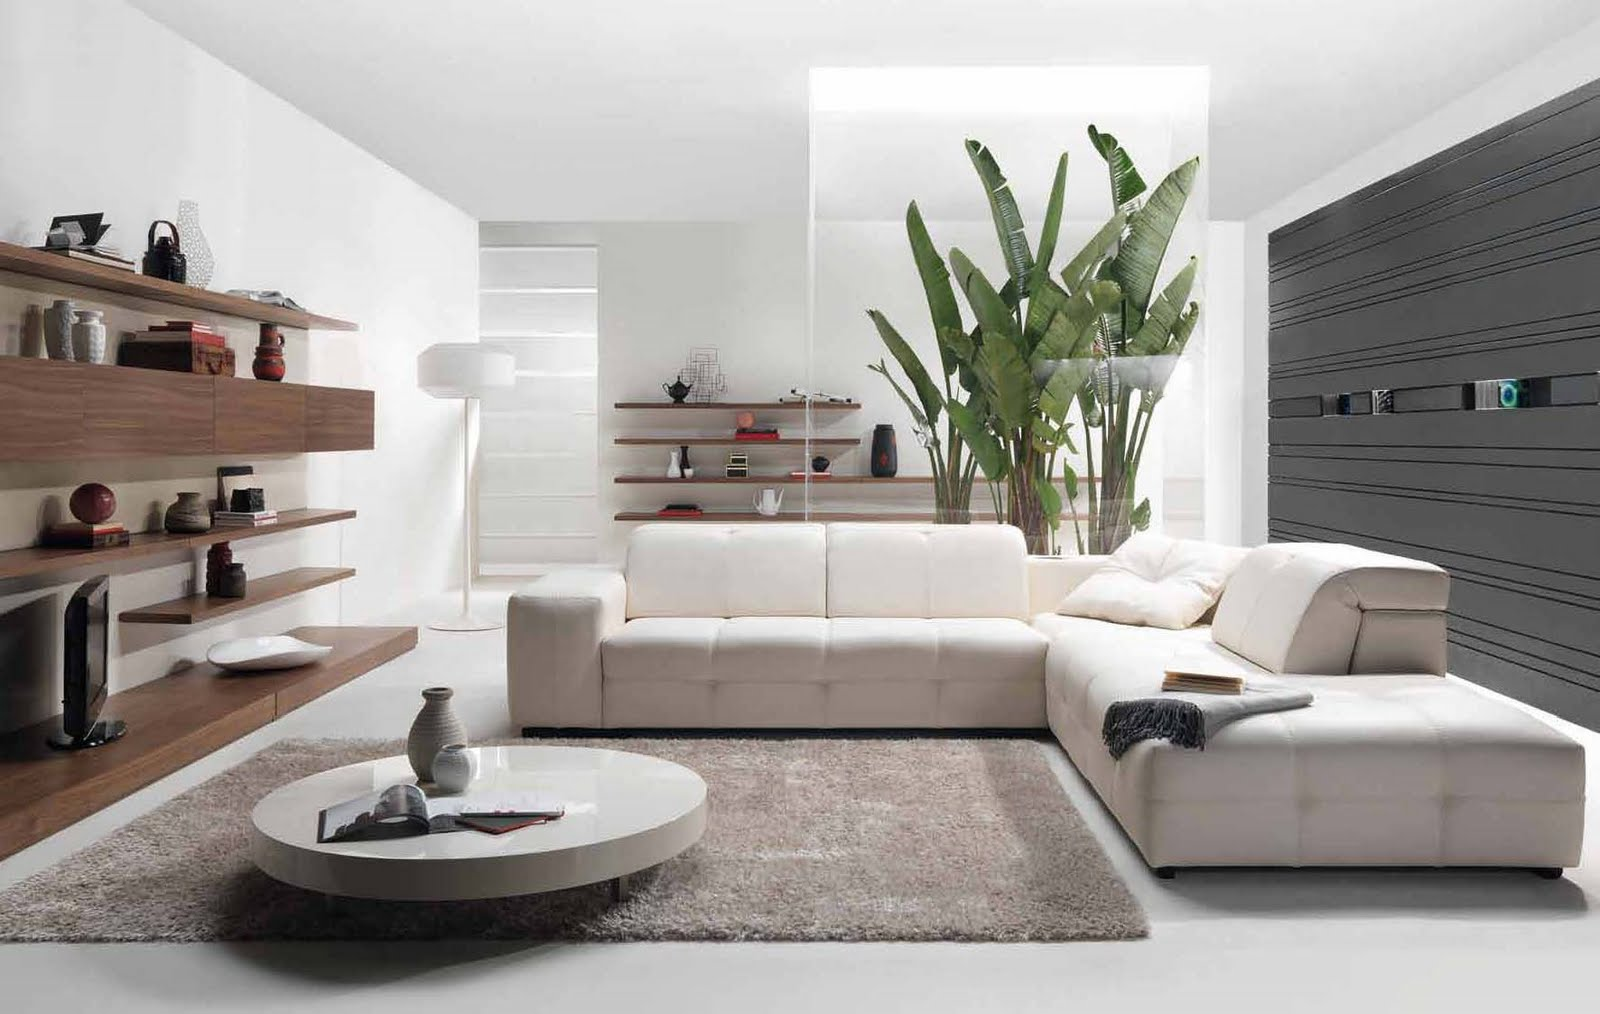 Future house design modern living room interior design for Modern zen interior design living room